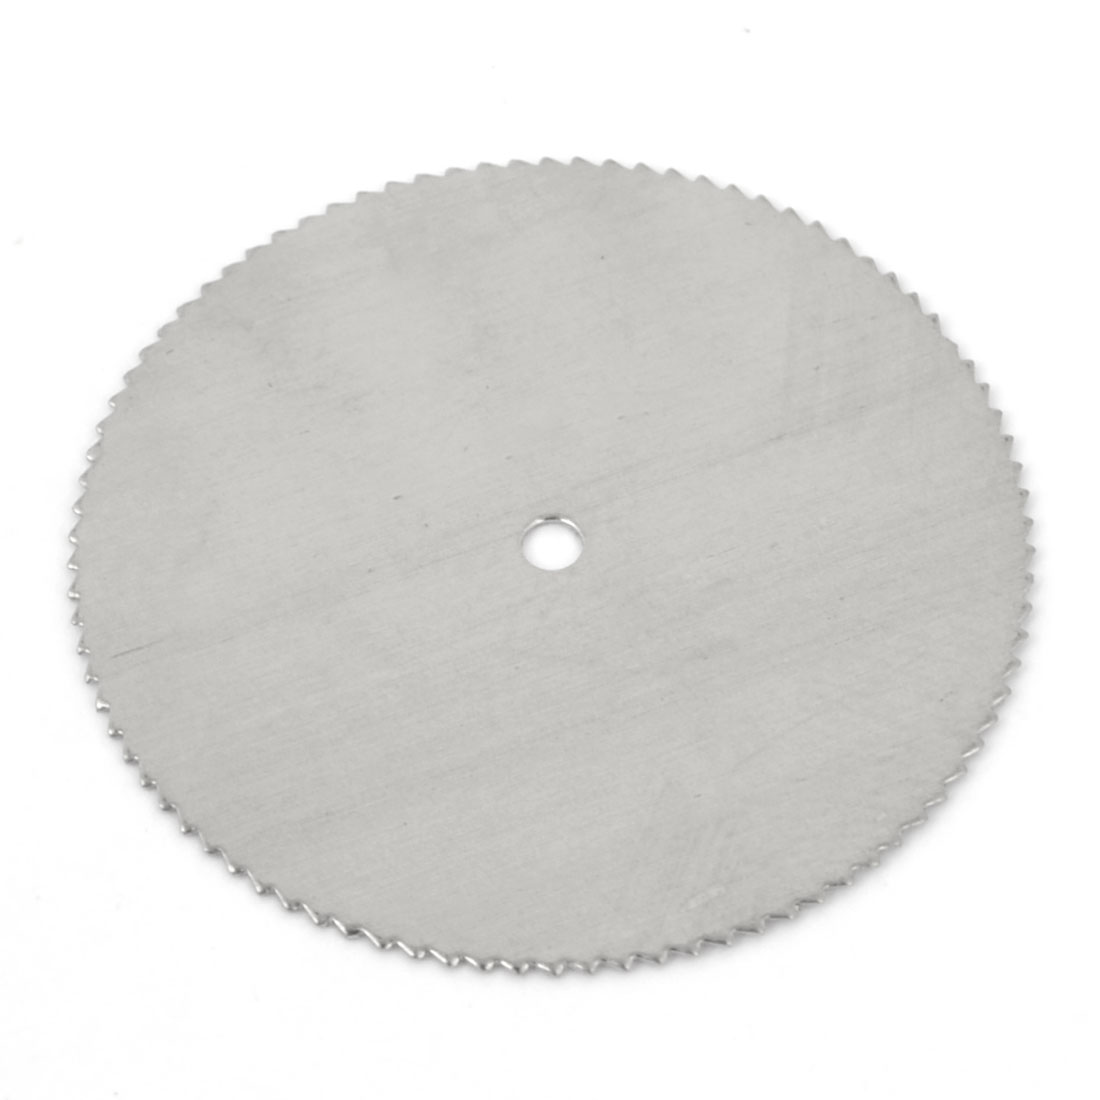 Silver Tone HSS Woodworking Circular 32mm Dia 2mm Arbor Hole Diameter 0.35mm Thickness Nitride Slitting Saw Cutter